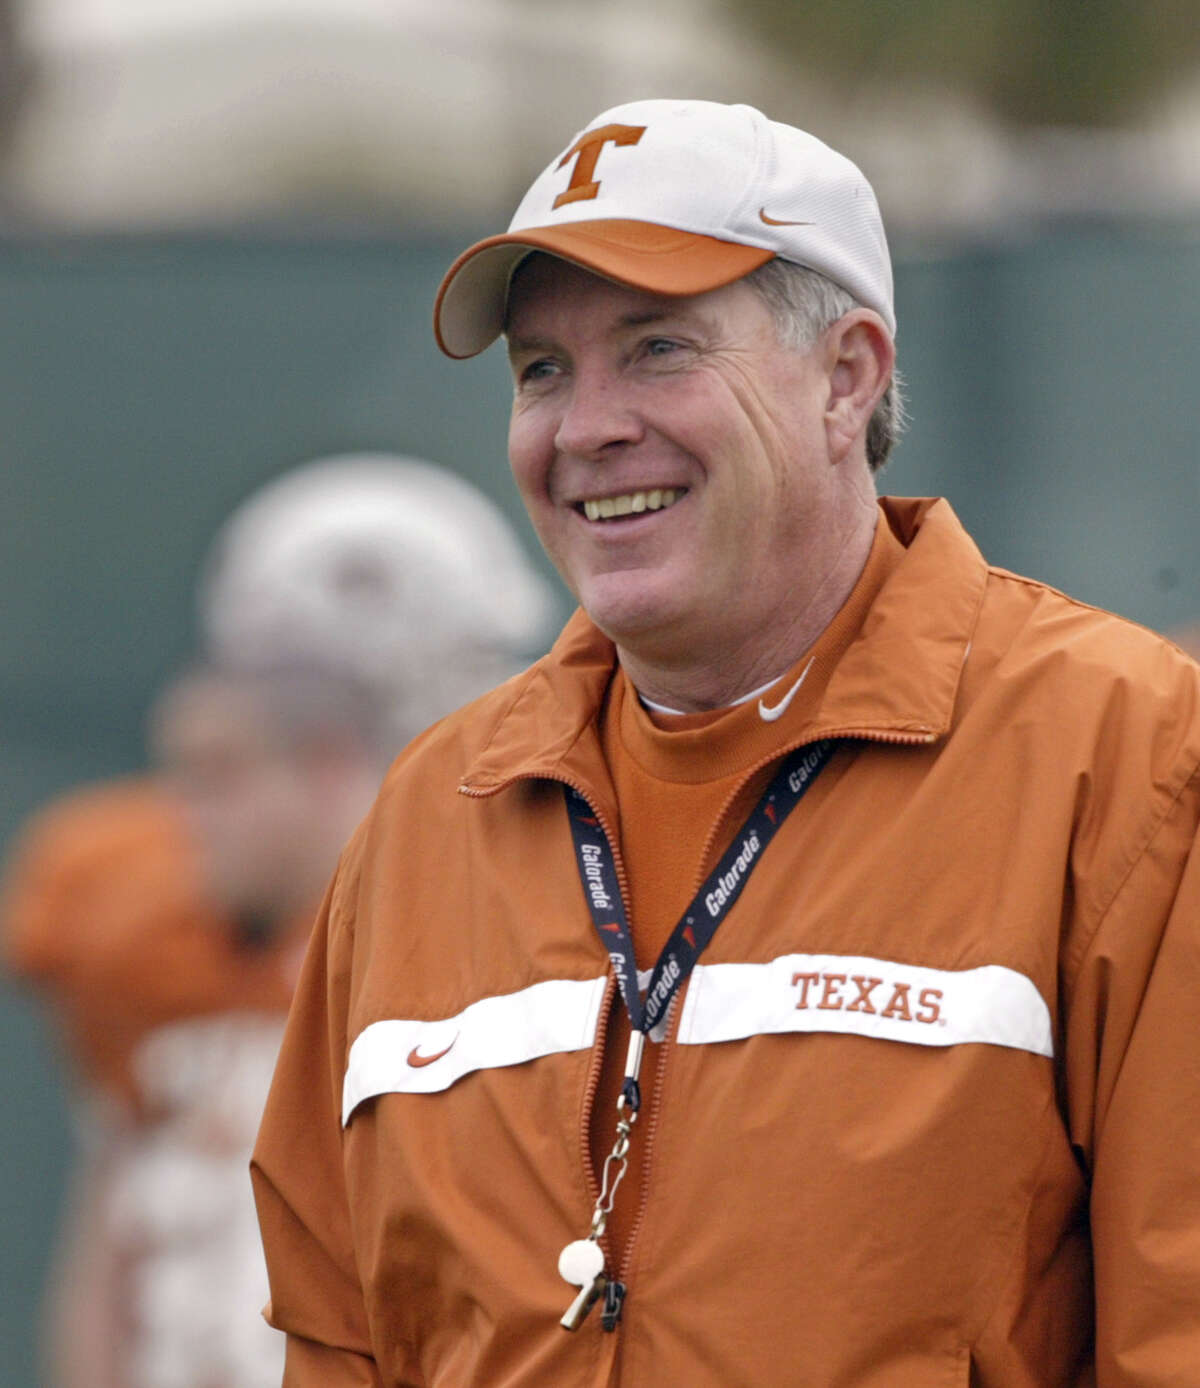 On Saturday, Dec. 14, 2013, UT head coach Mack Brown announced he was resigning after 16 years as head coach of the University of Texas Longhorns. Here is a look at his five most memorable wins and losses.